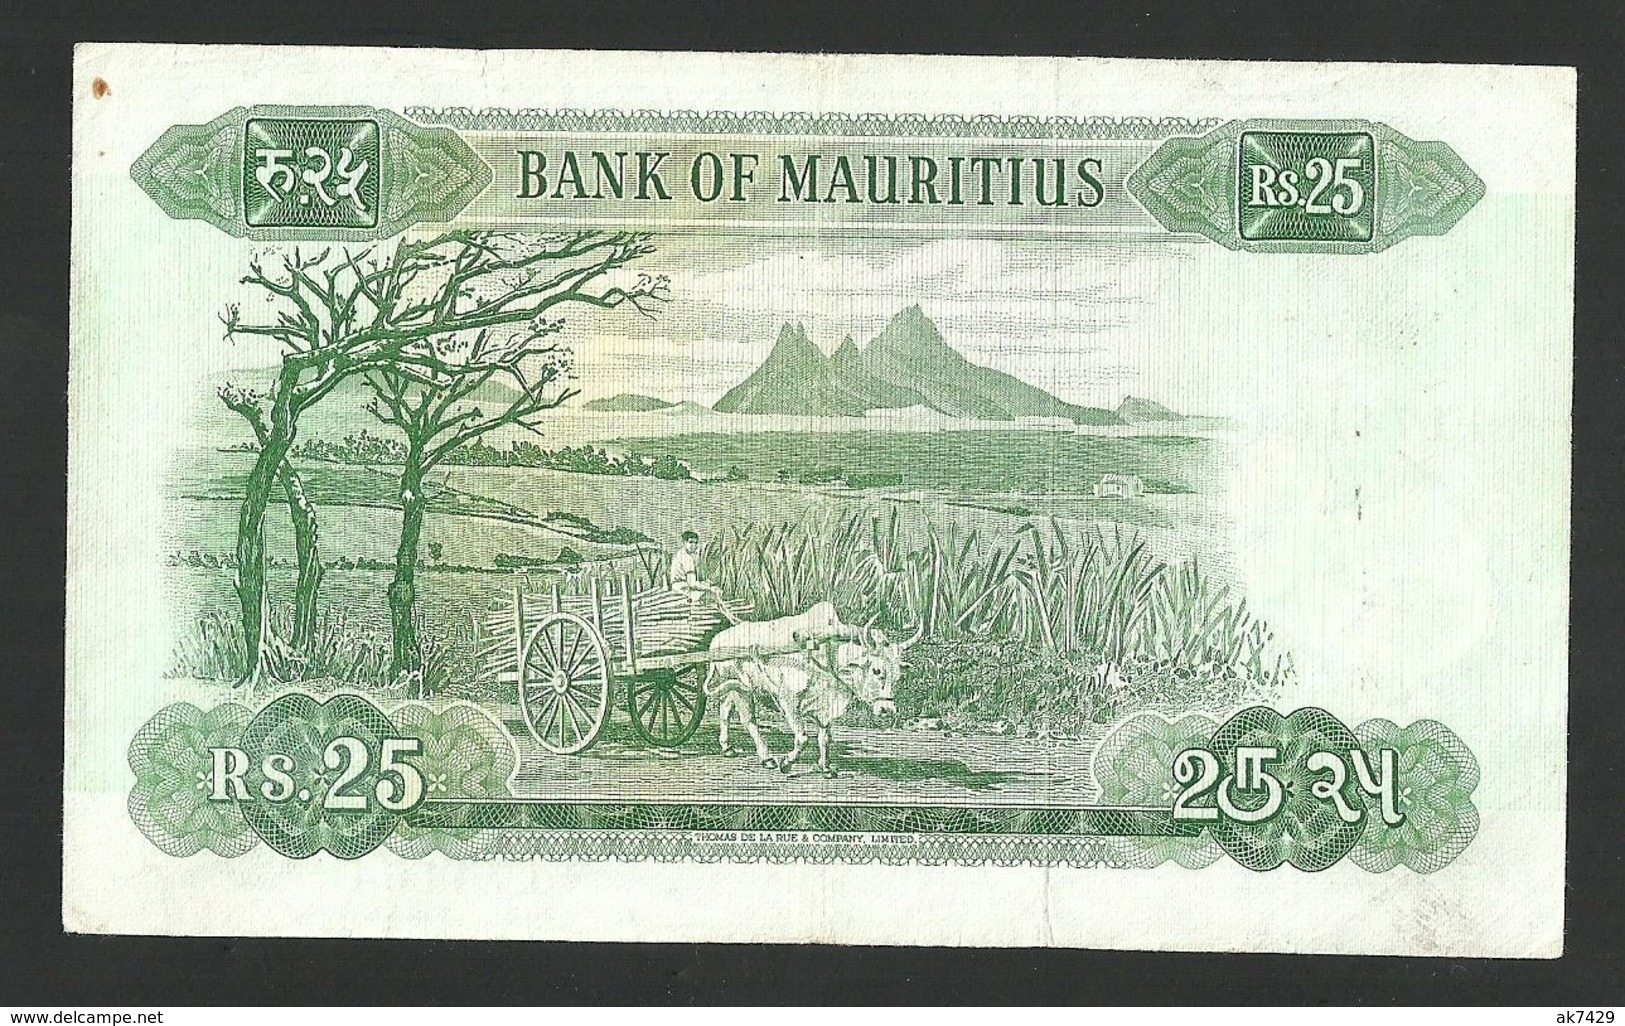 MAURITIUS 25 RUPEES ND (1967) PICK #32b, Sign 4, A5 RARE GREAT VF+ CONDITION - Maurice